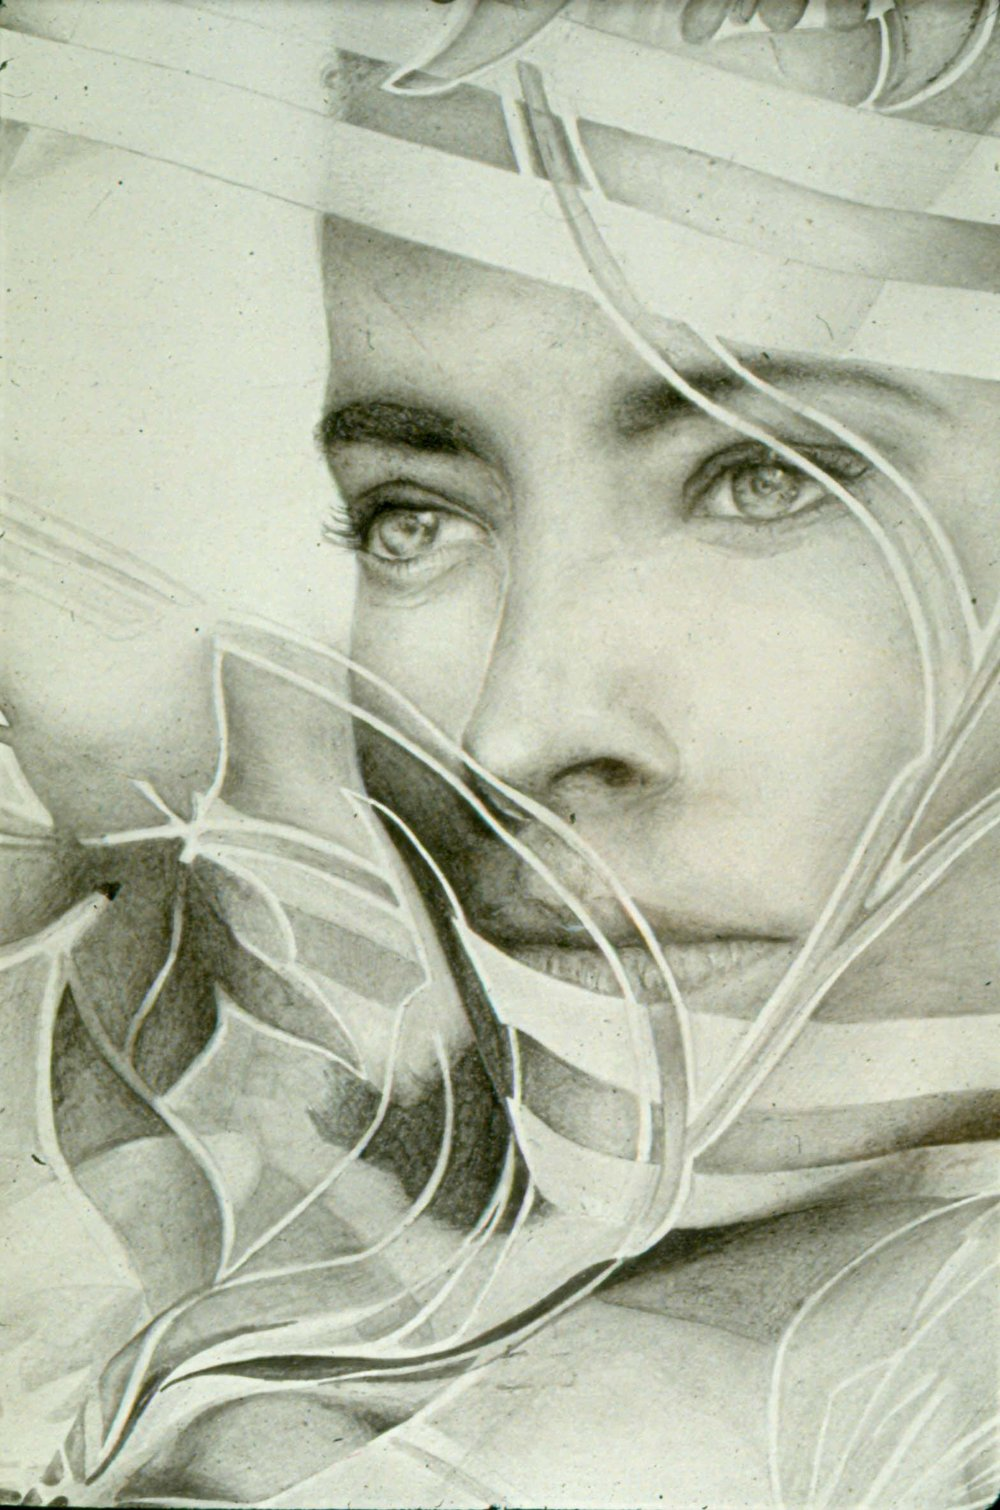 profile face looking through sheer scarf - pencil